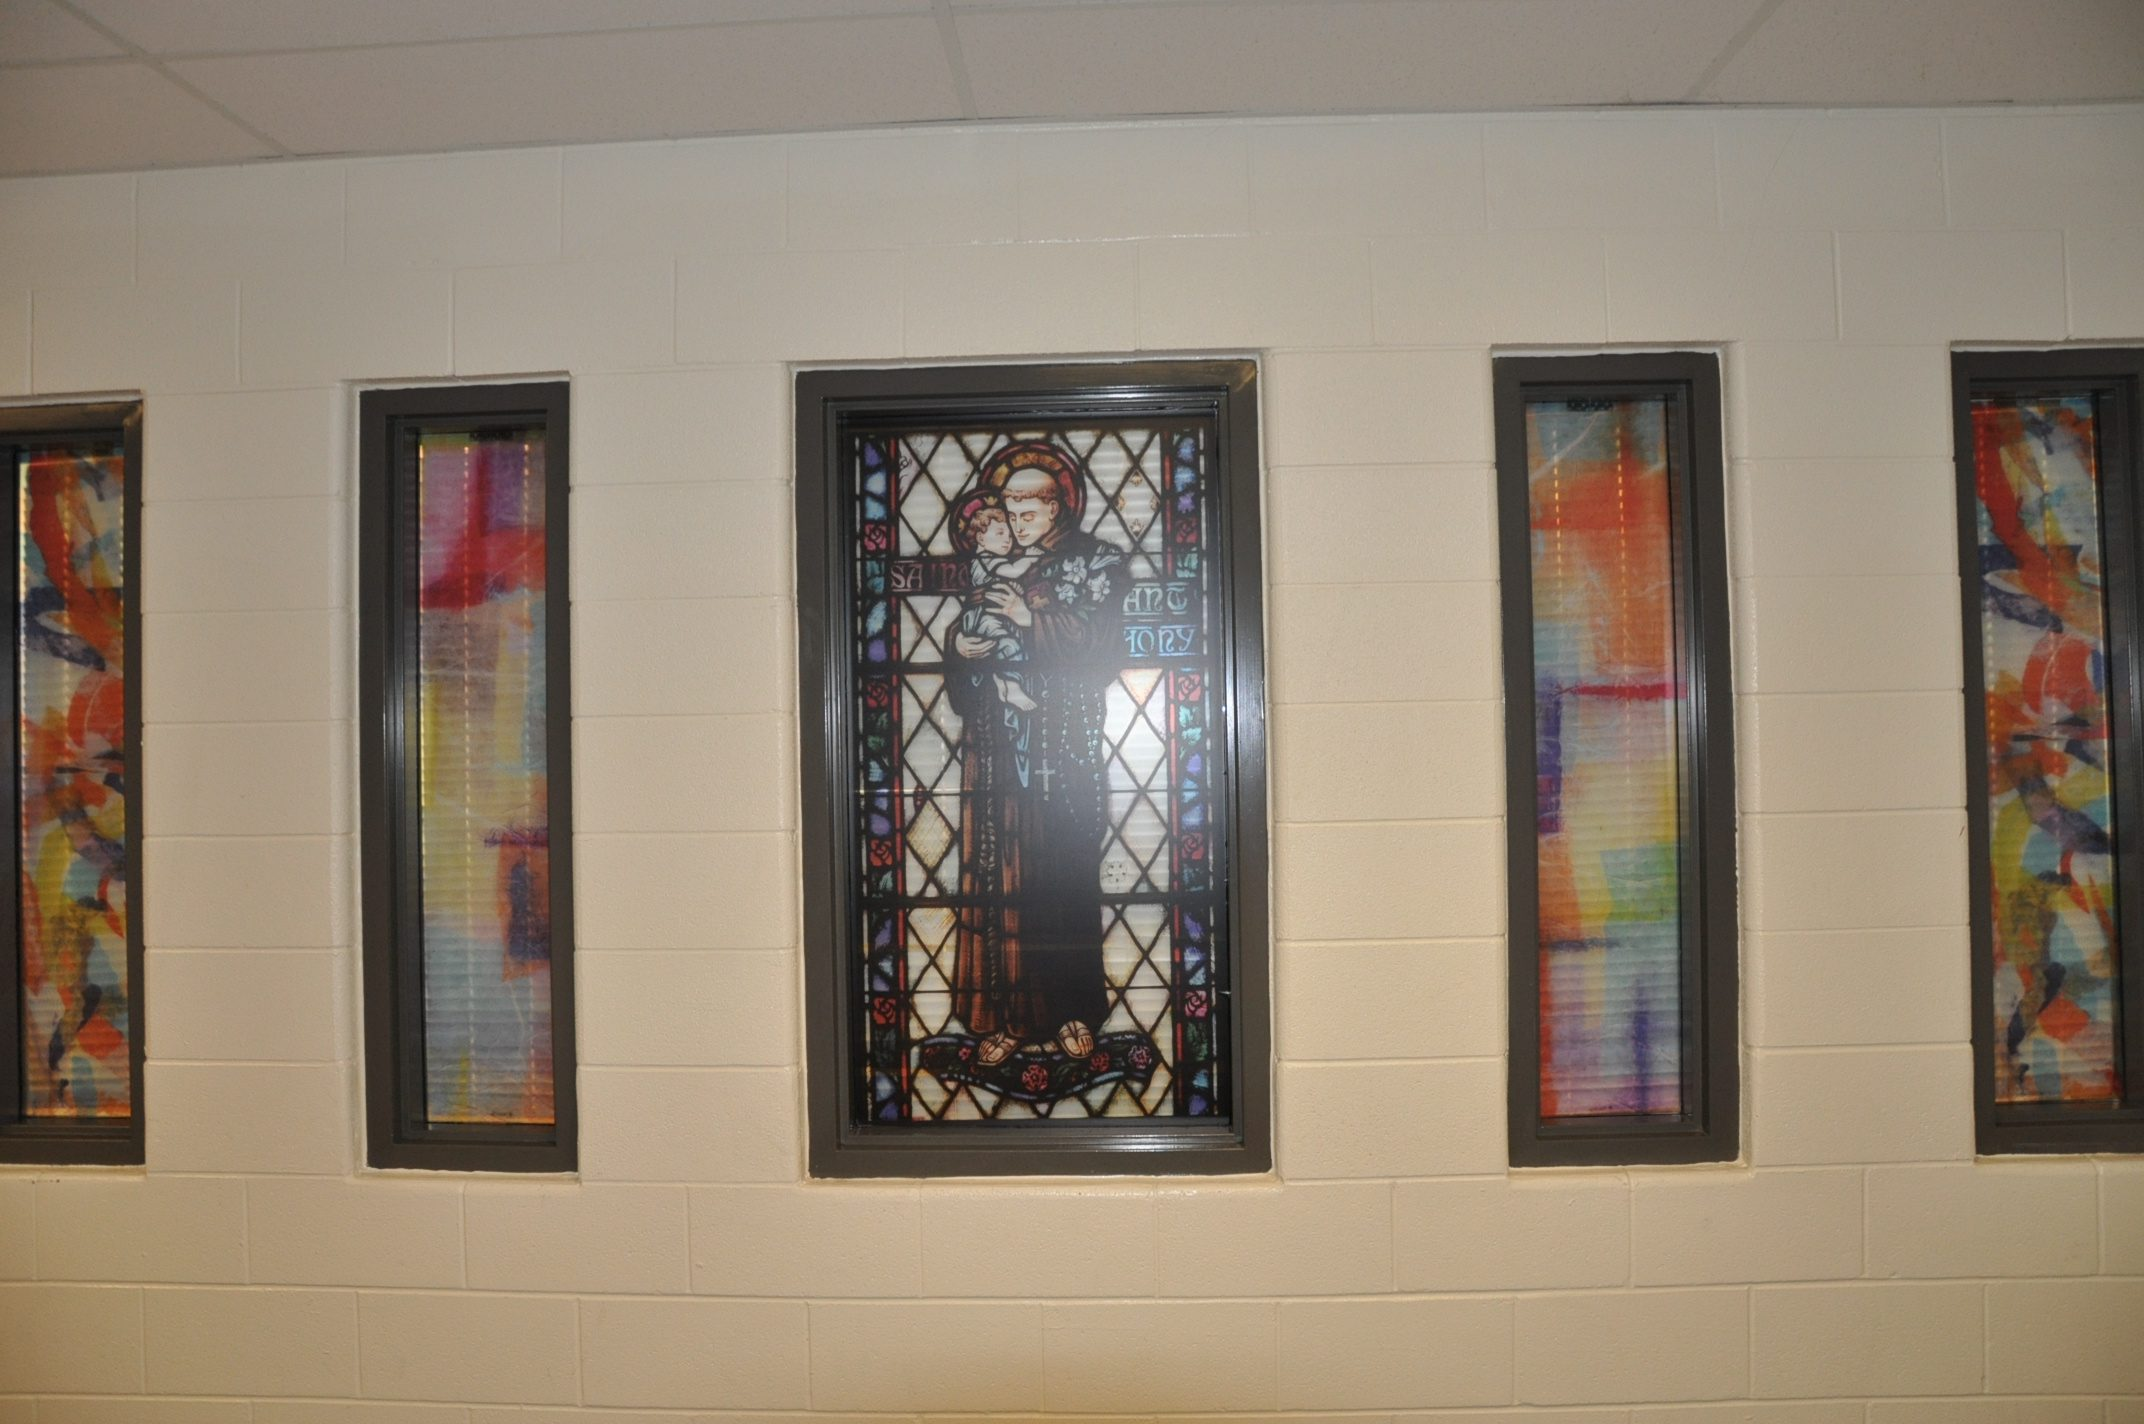 St. Anthony of Padua window covering